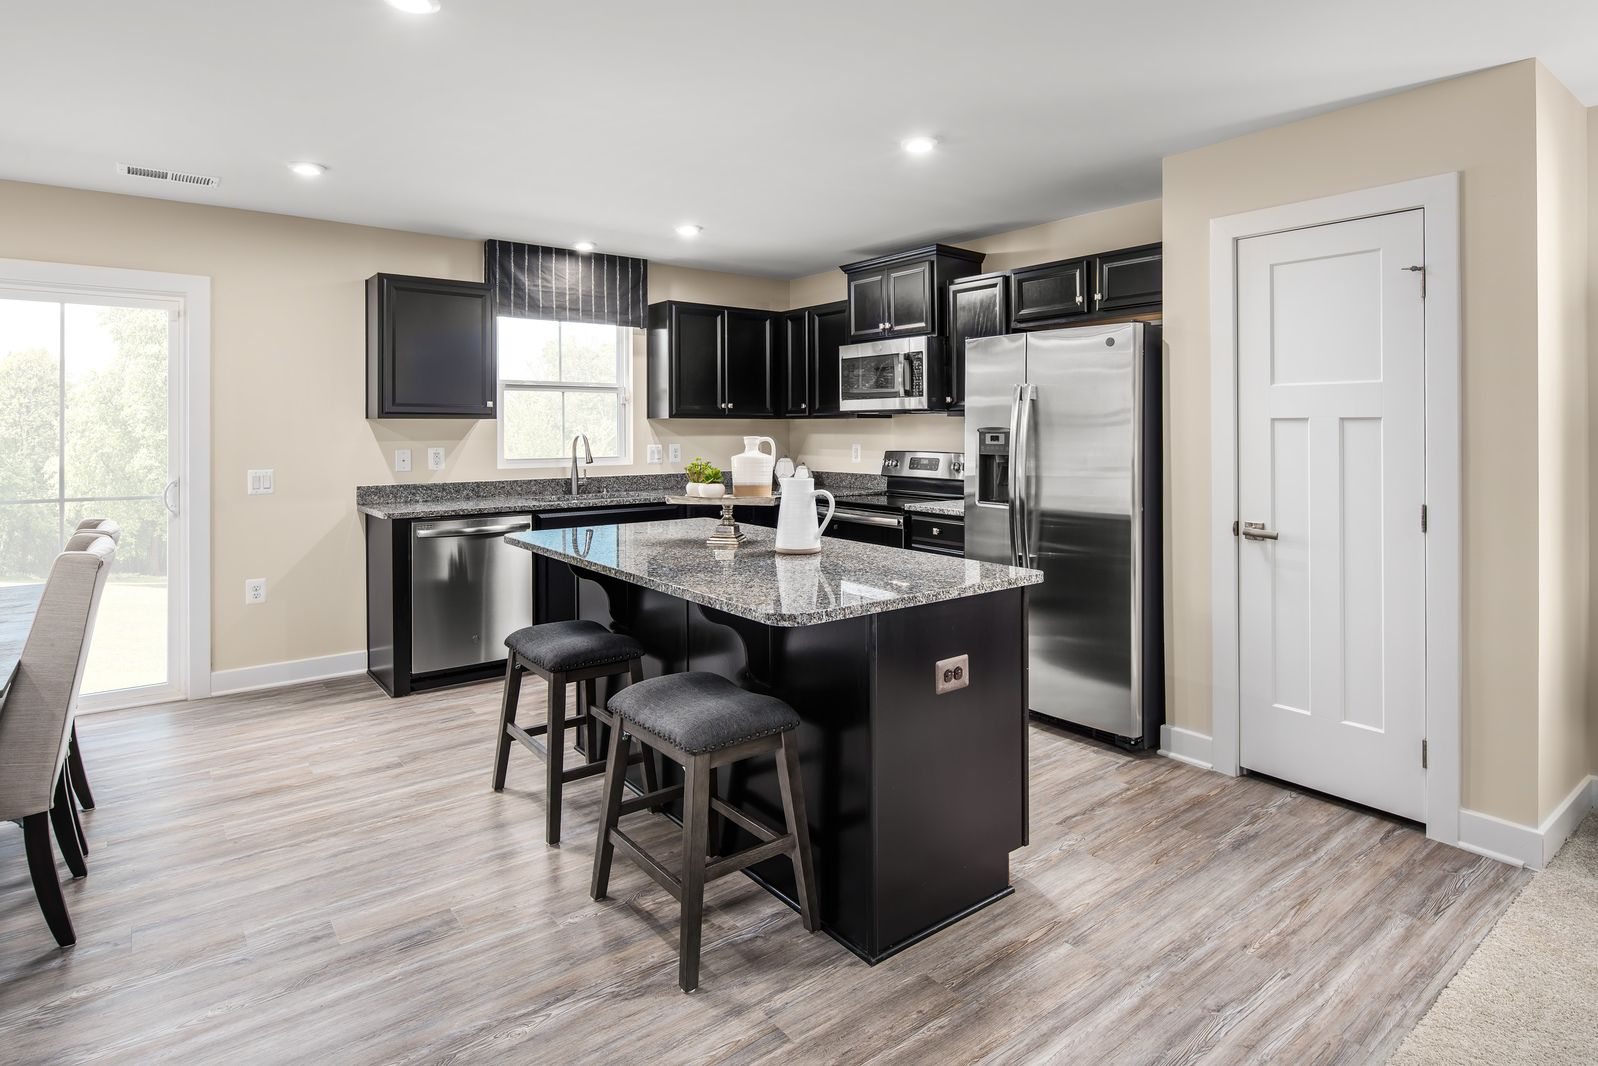 Kitchen featured in the Cayman By Ryan Homes in Cleveland, OH